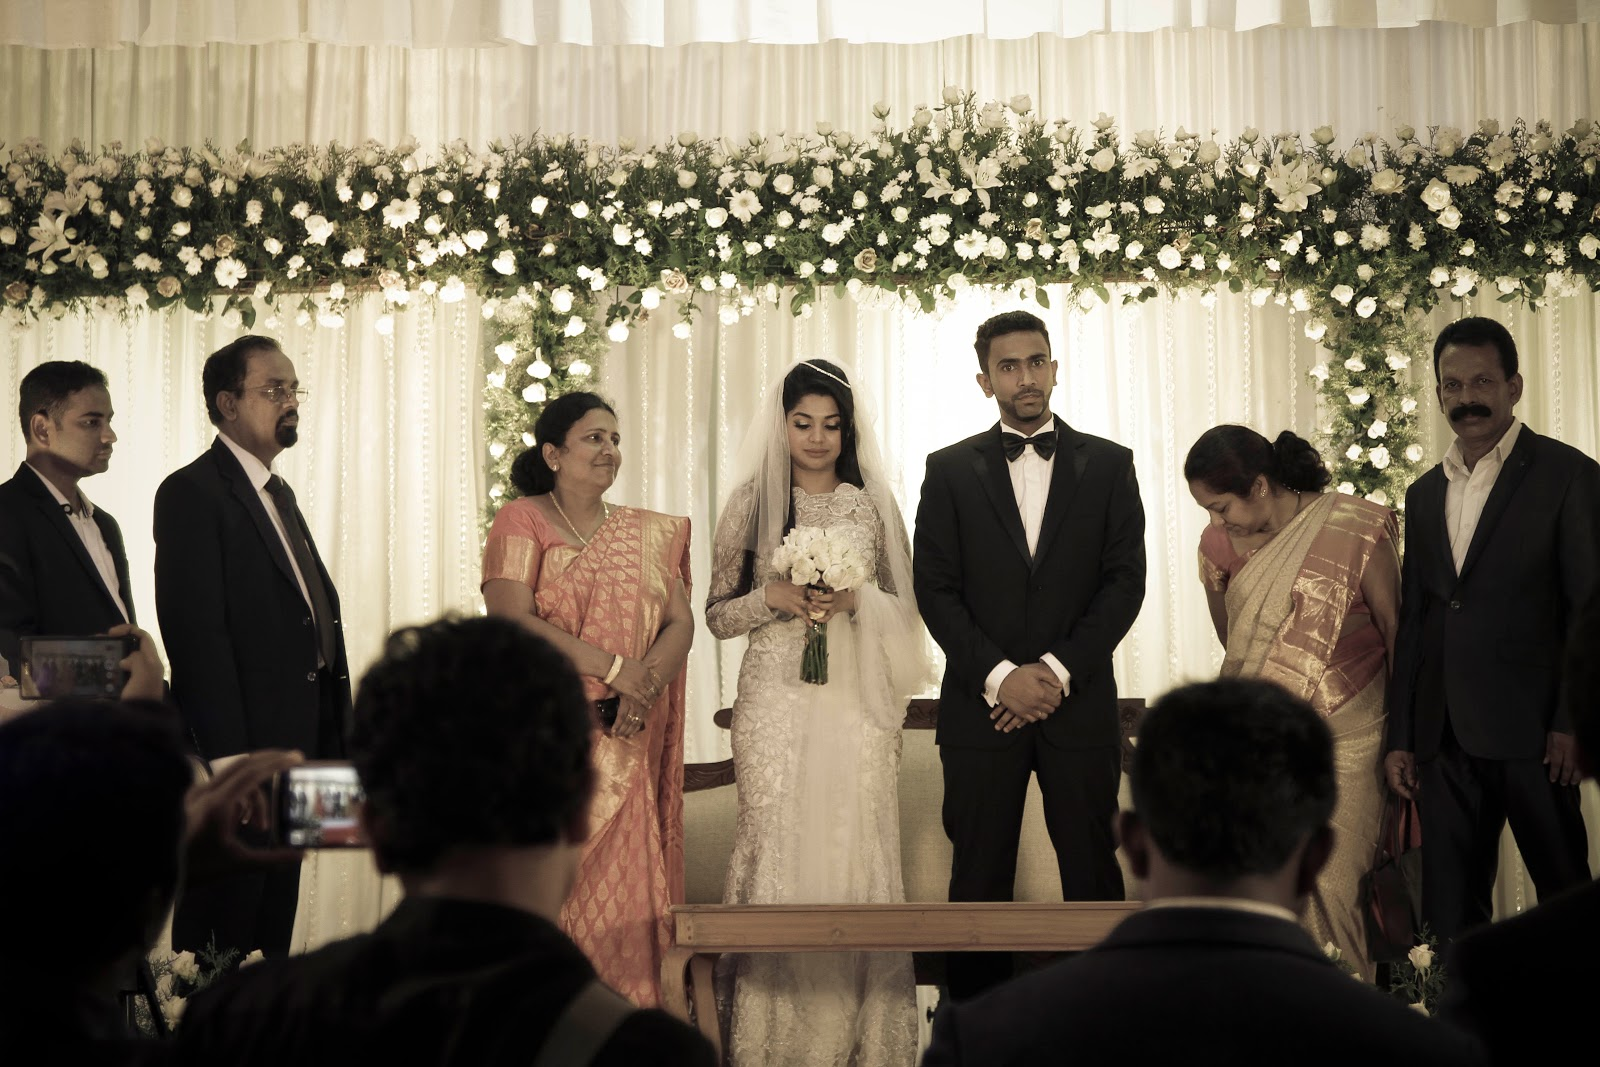 Trivandrum events weddings and more the christian wedding stage the christian wedding stage thecheapjerseys Image collections